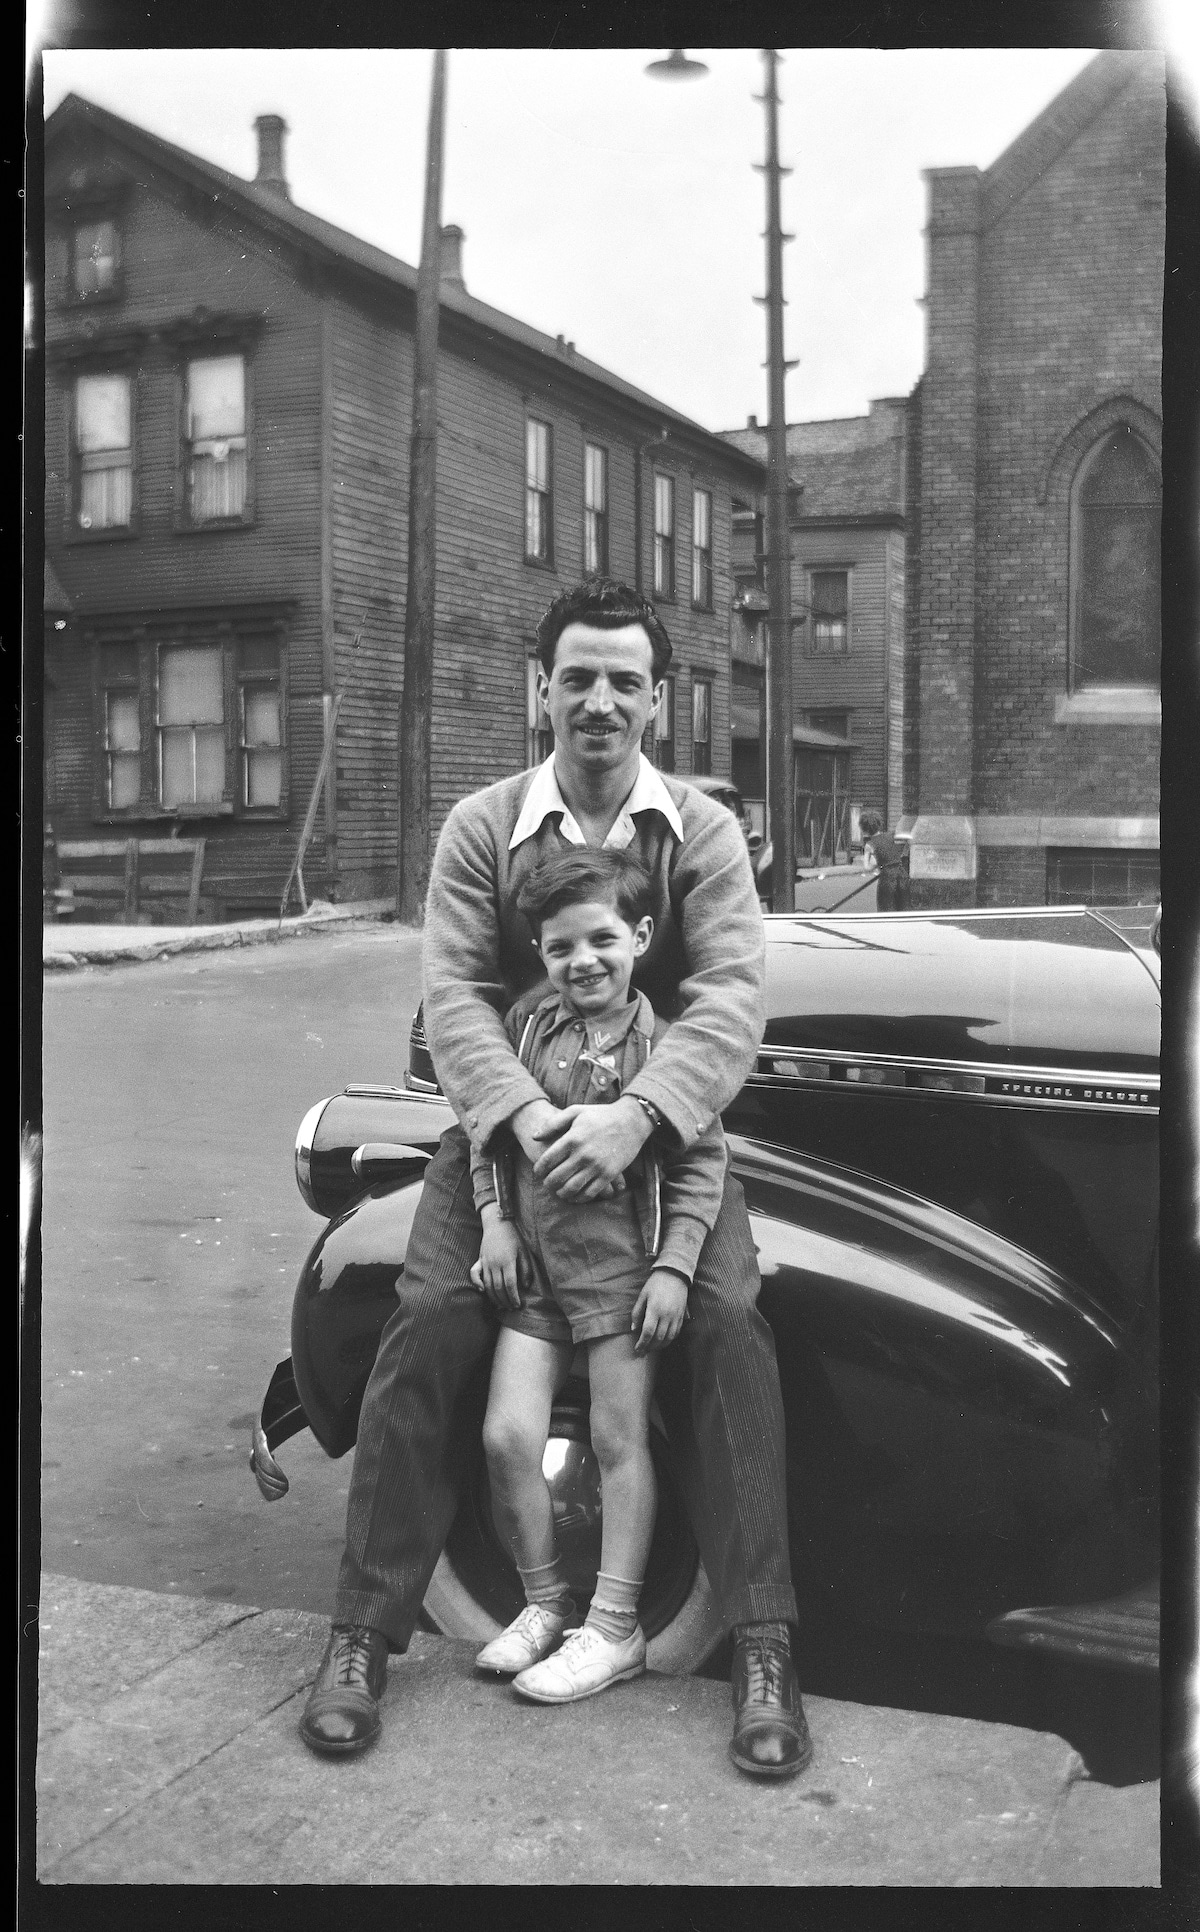 Father and Son in Front of a Car in 1930s Chicago